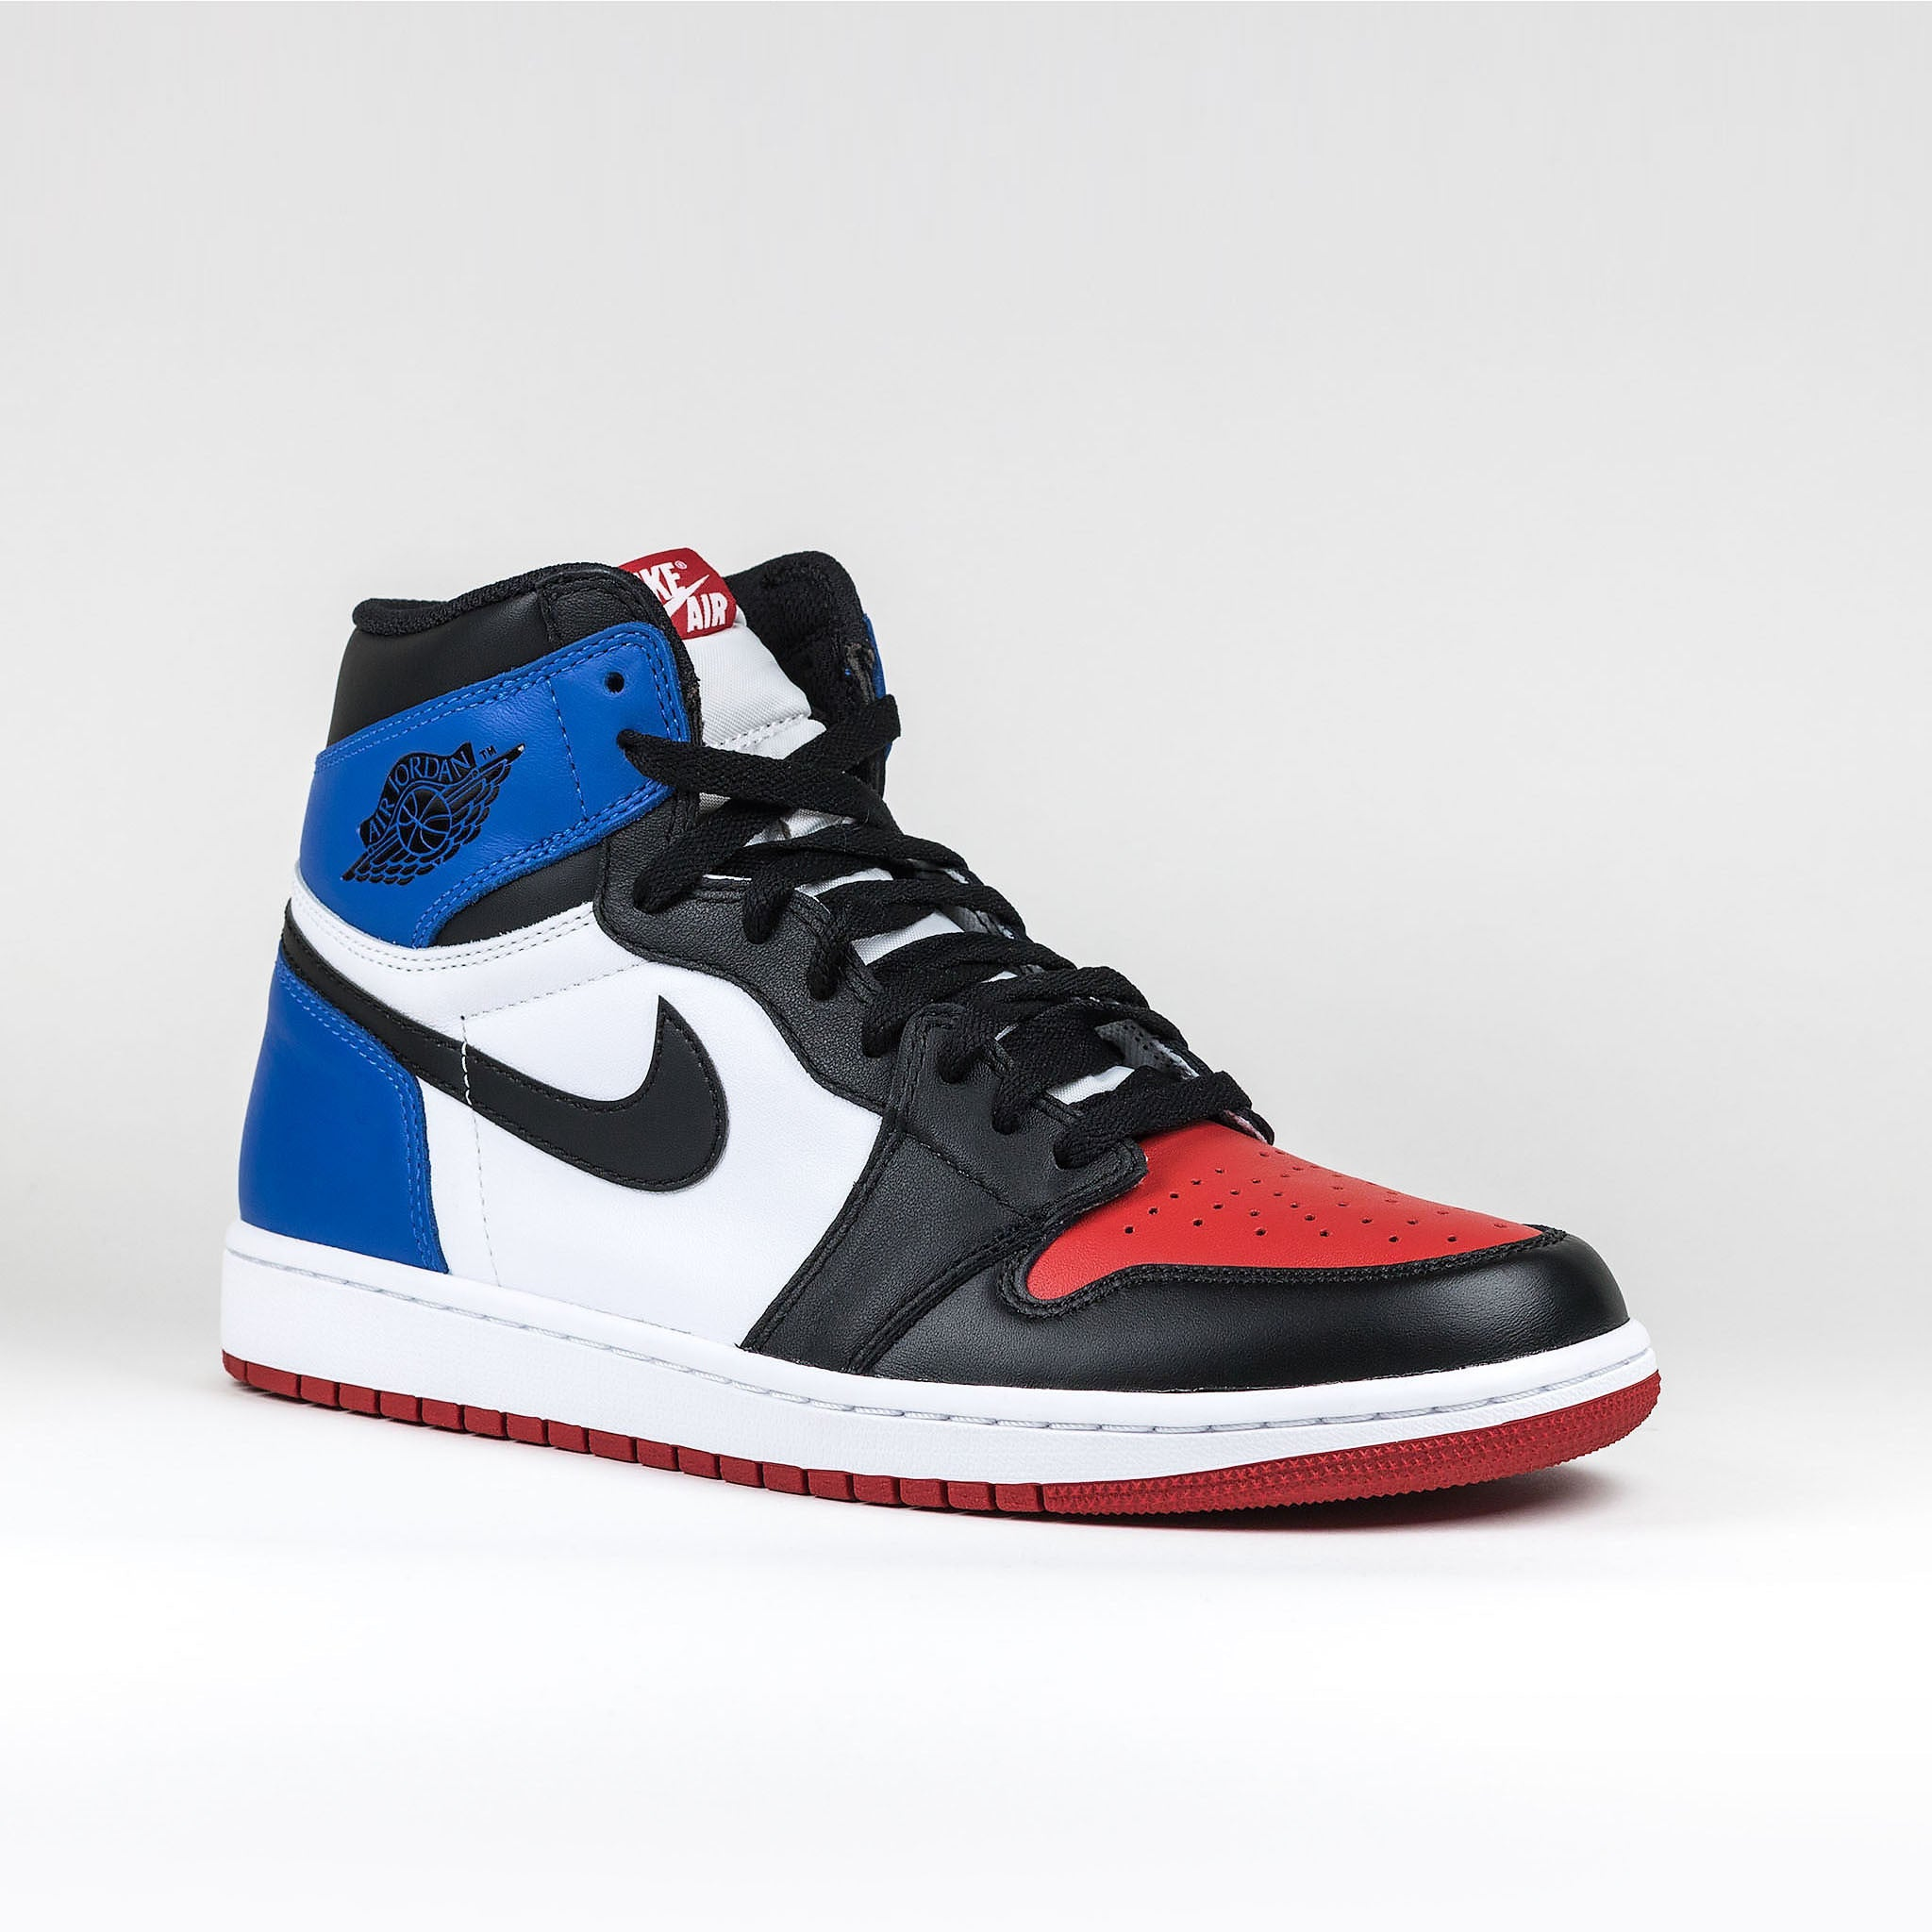 4ac6c60d7 Nike Air Jordan 1 Retro Top 3 Sneaker – Crepslocker